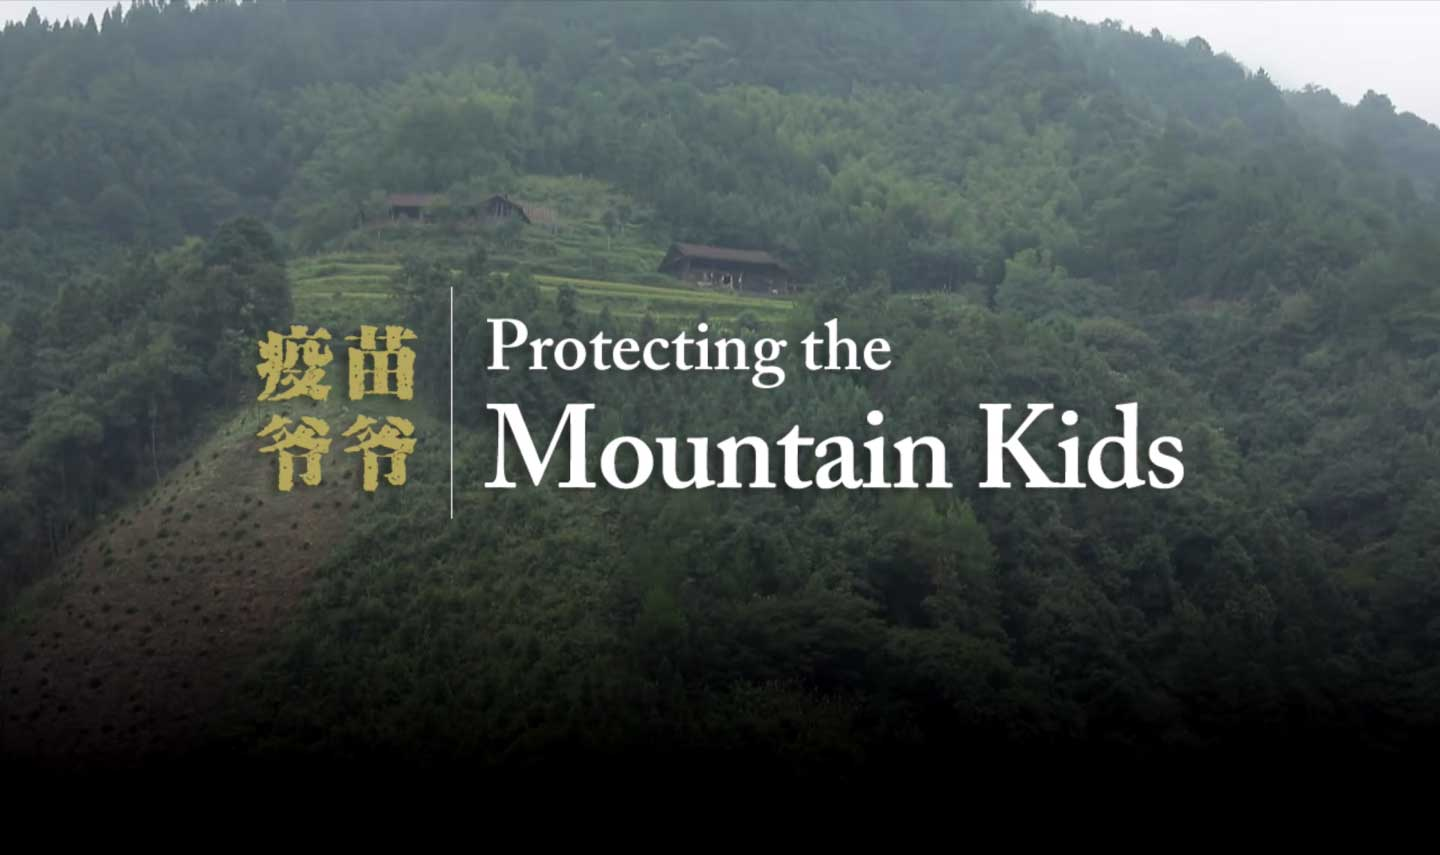 PROTECTING THE MOUNTAIN KIDS | GlobalTrend Video Awards